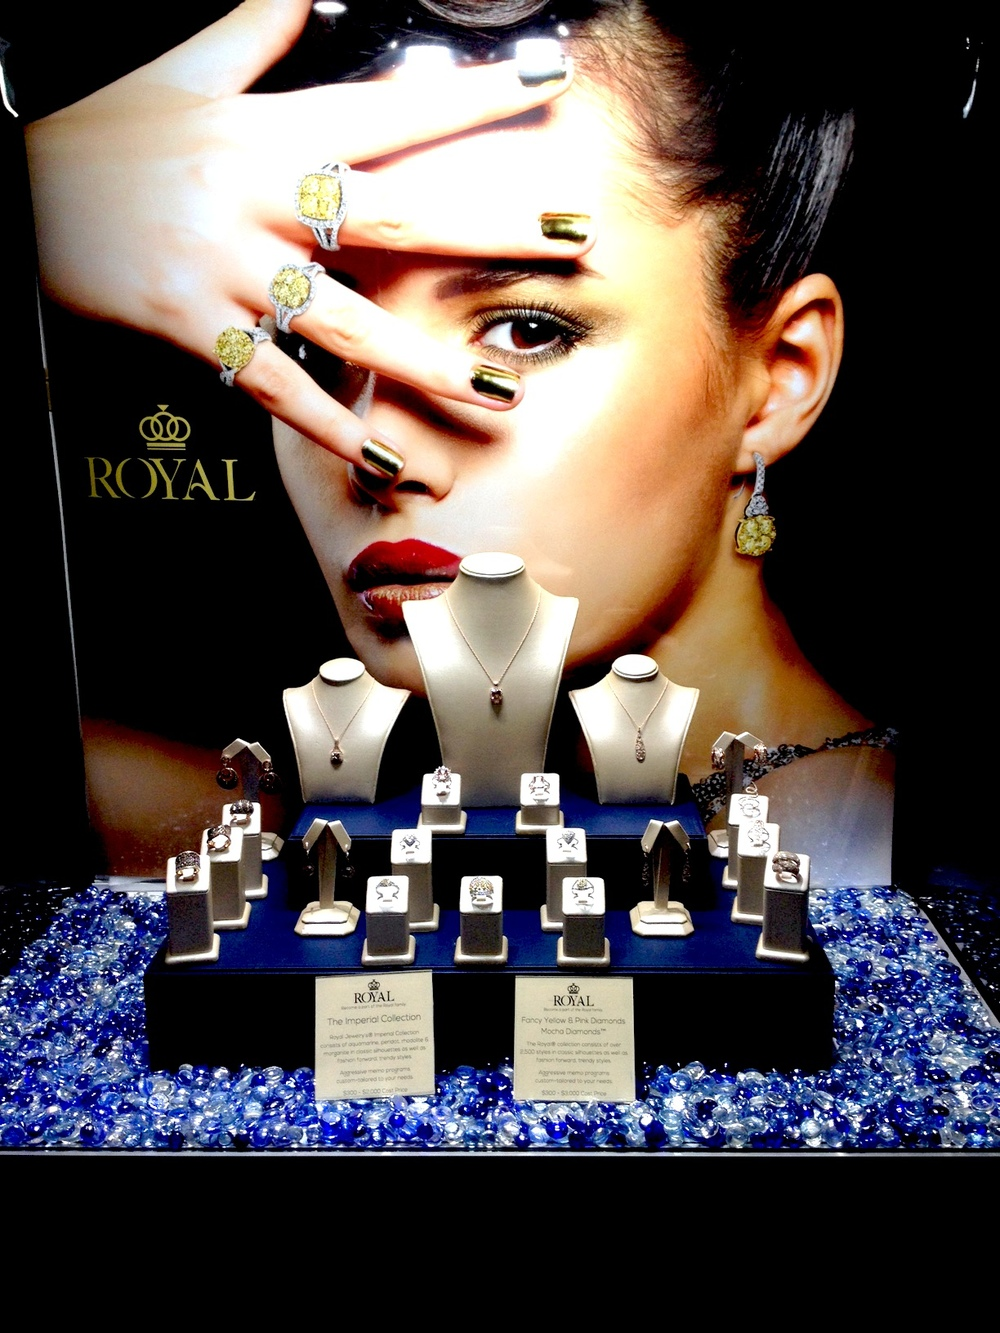 Elegant in its craft, Royal Jewelry's salon shines bright with their one-of-a-kind diamond pieces!